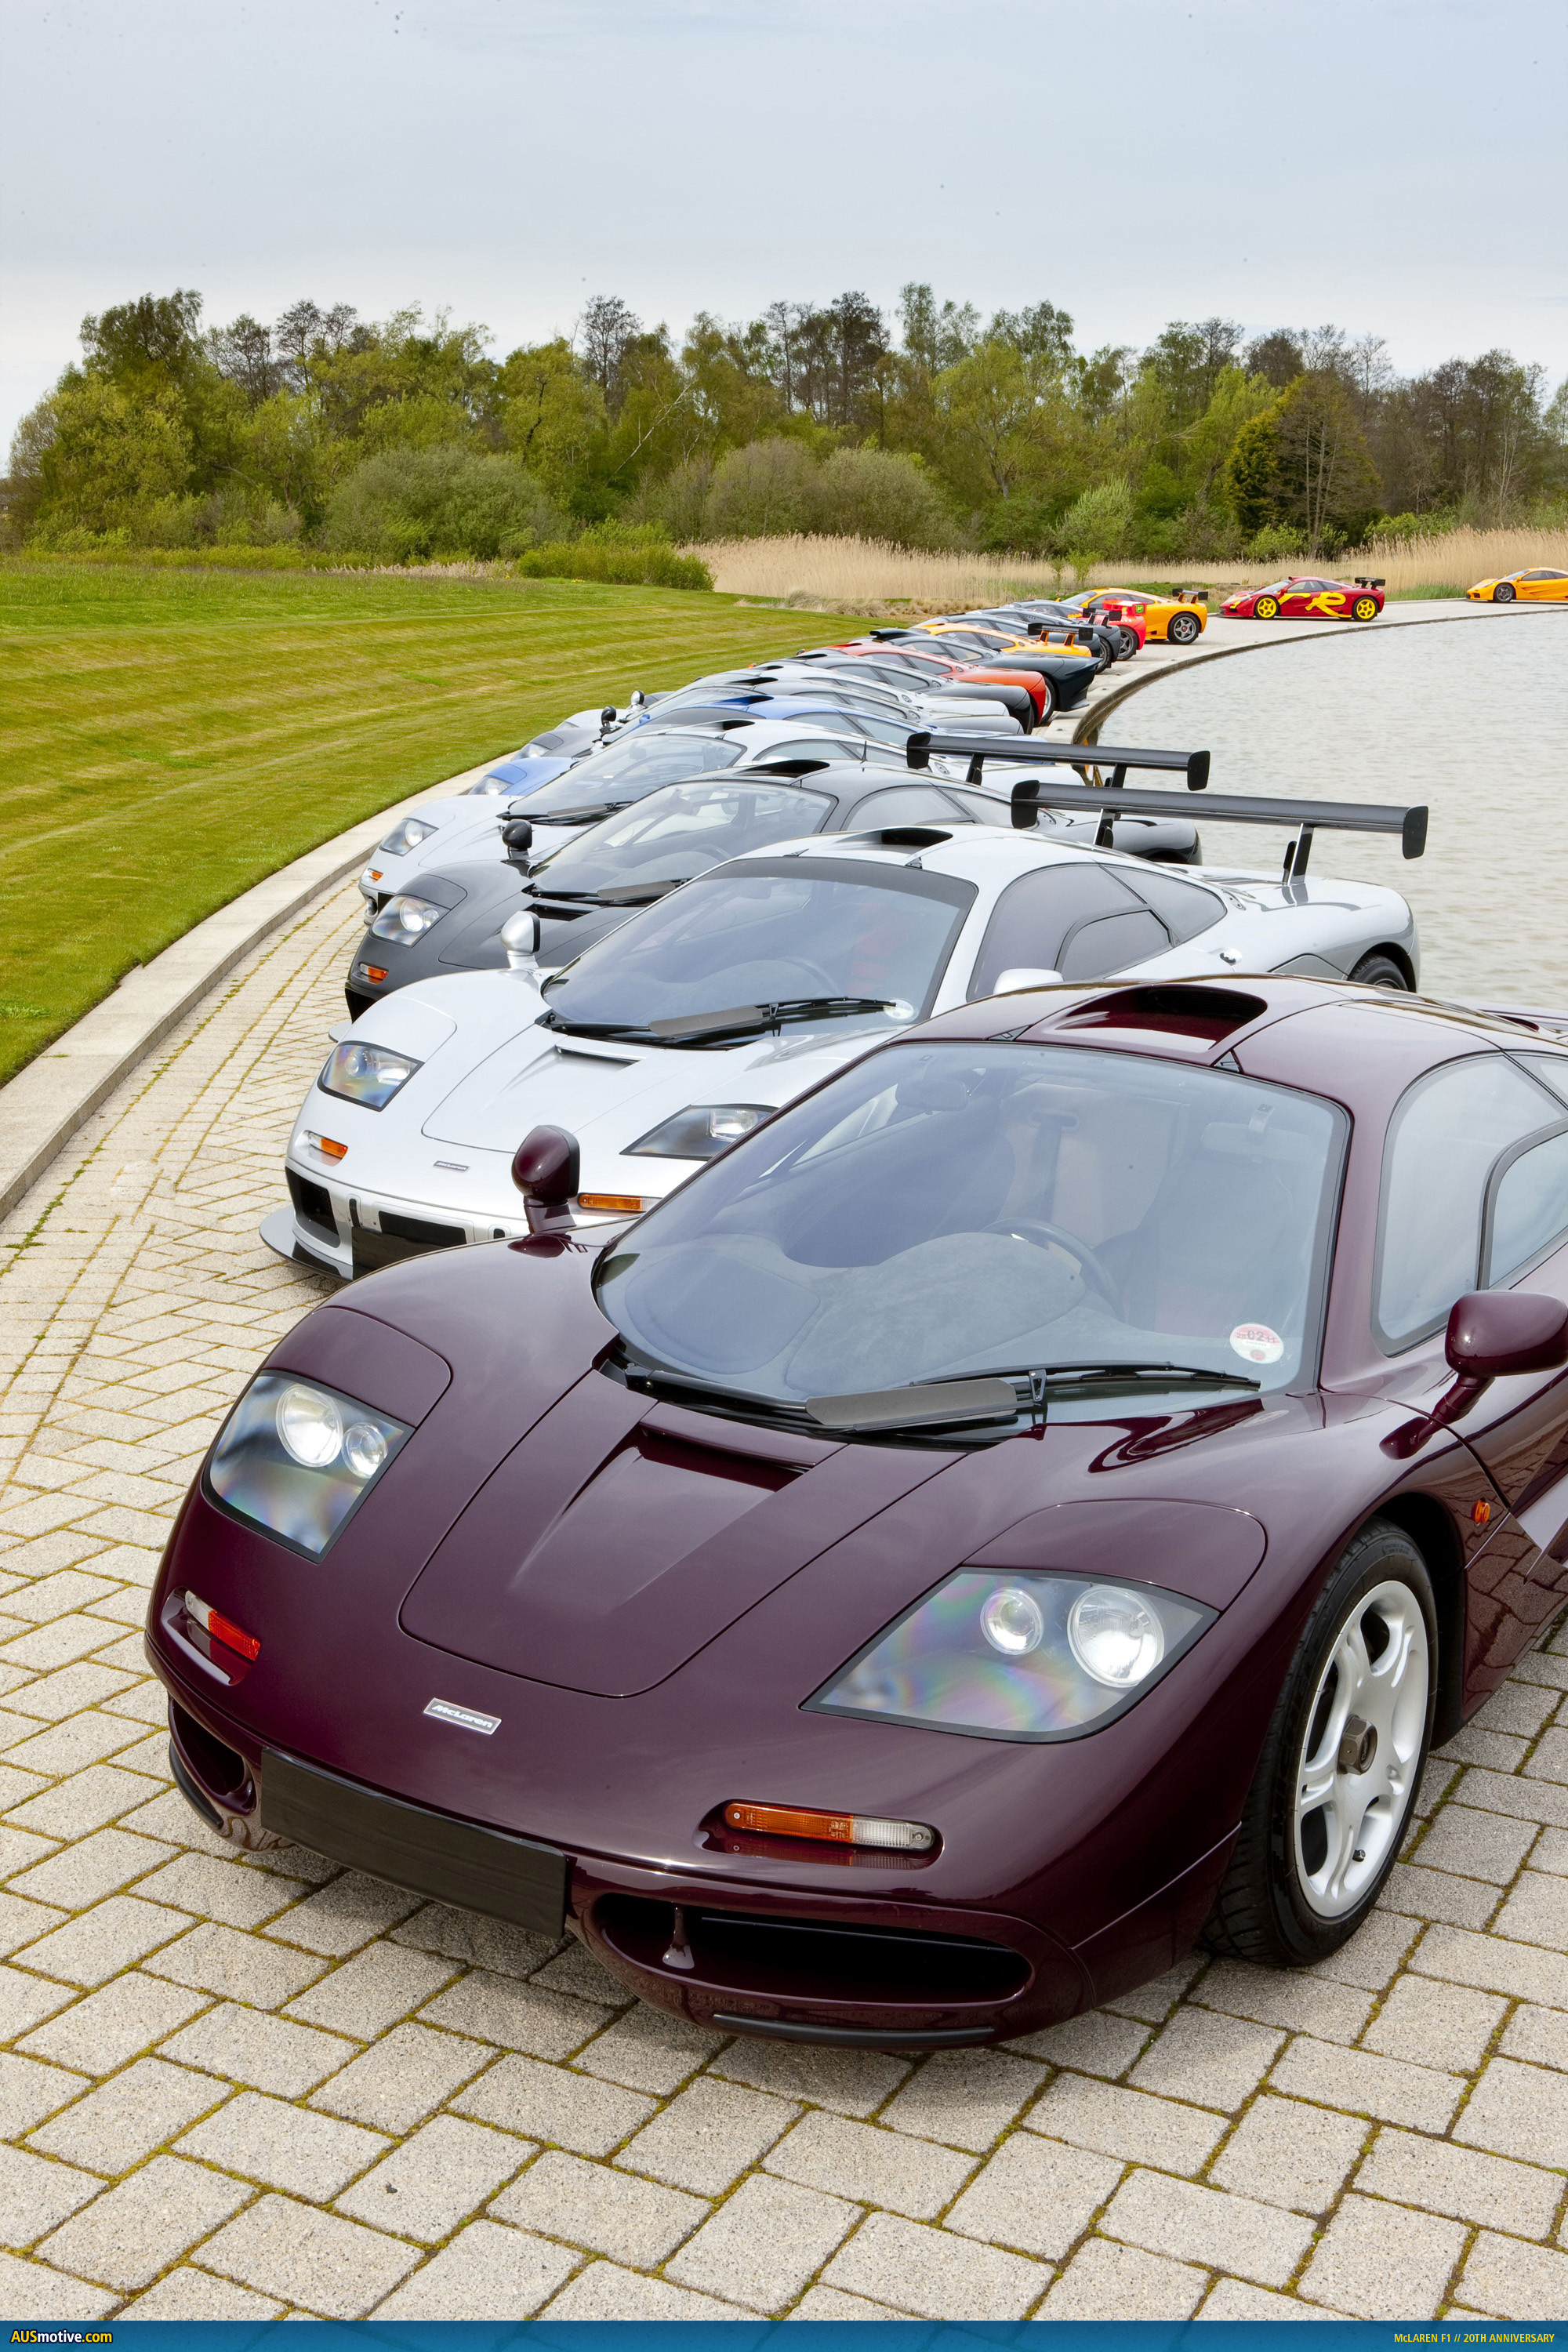 twenty years of the mclaren f1. Black Bedroom Furniture Sets. Home Design Ideas